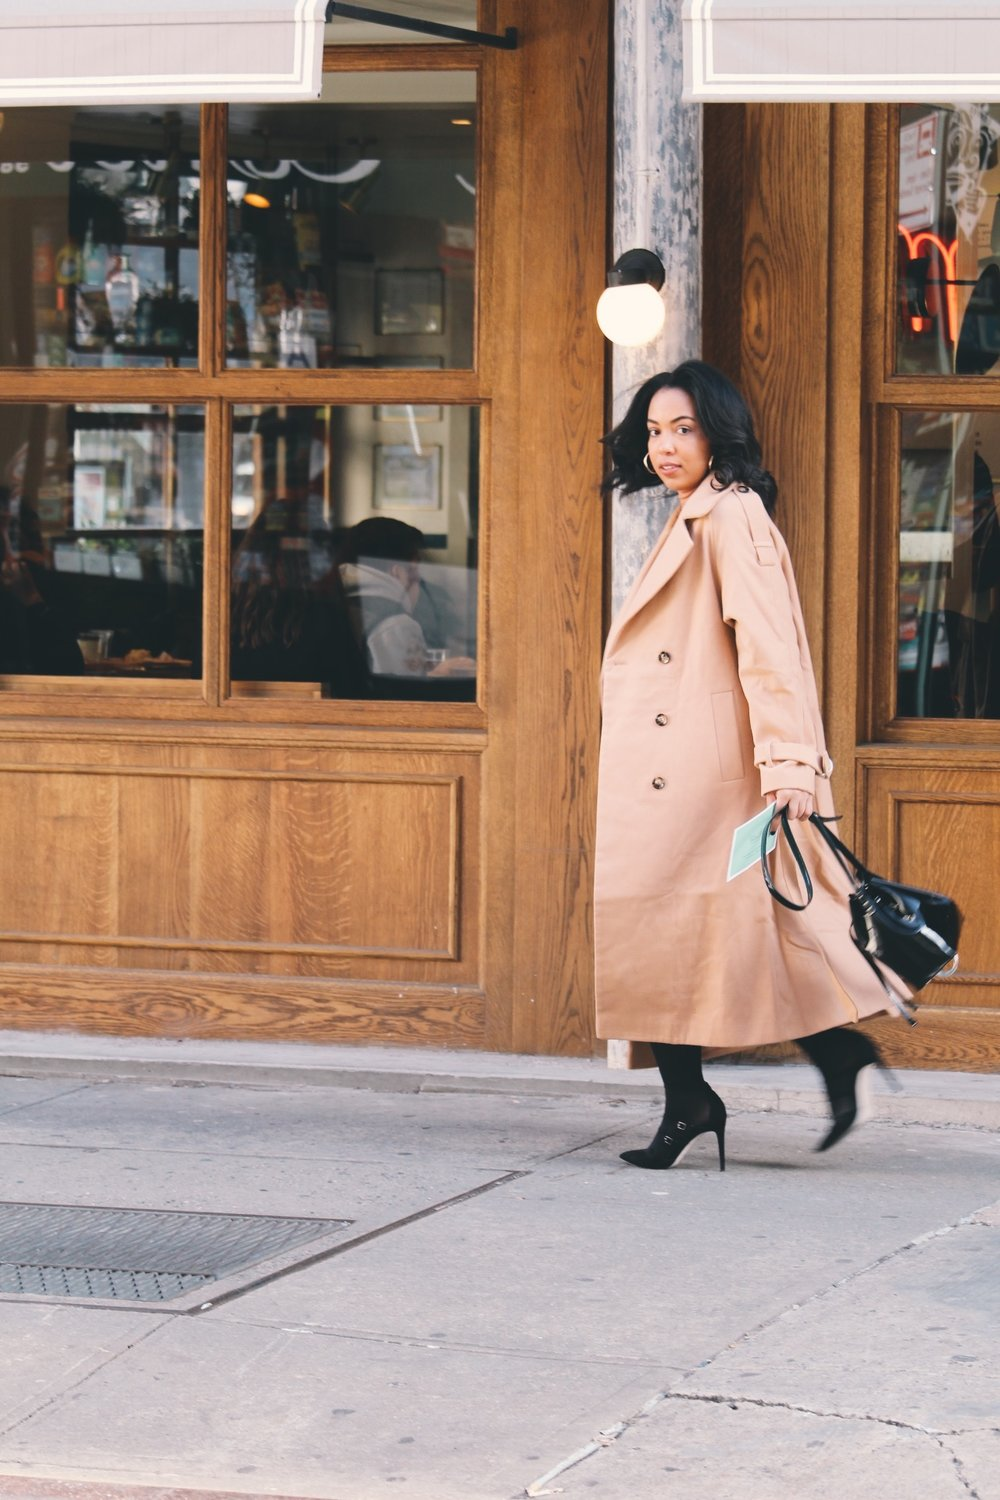 Soho-NYC-Cafe-integral-egg-shop-asos-trench-turtleneck-maxi-dress-hue-tights-patent-bucket-bag-26.JPG